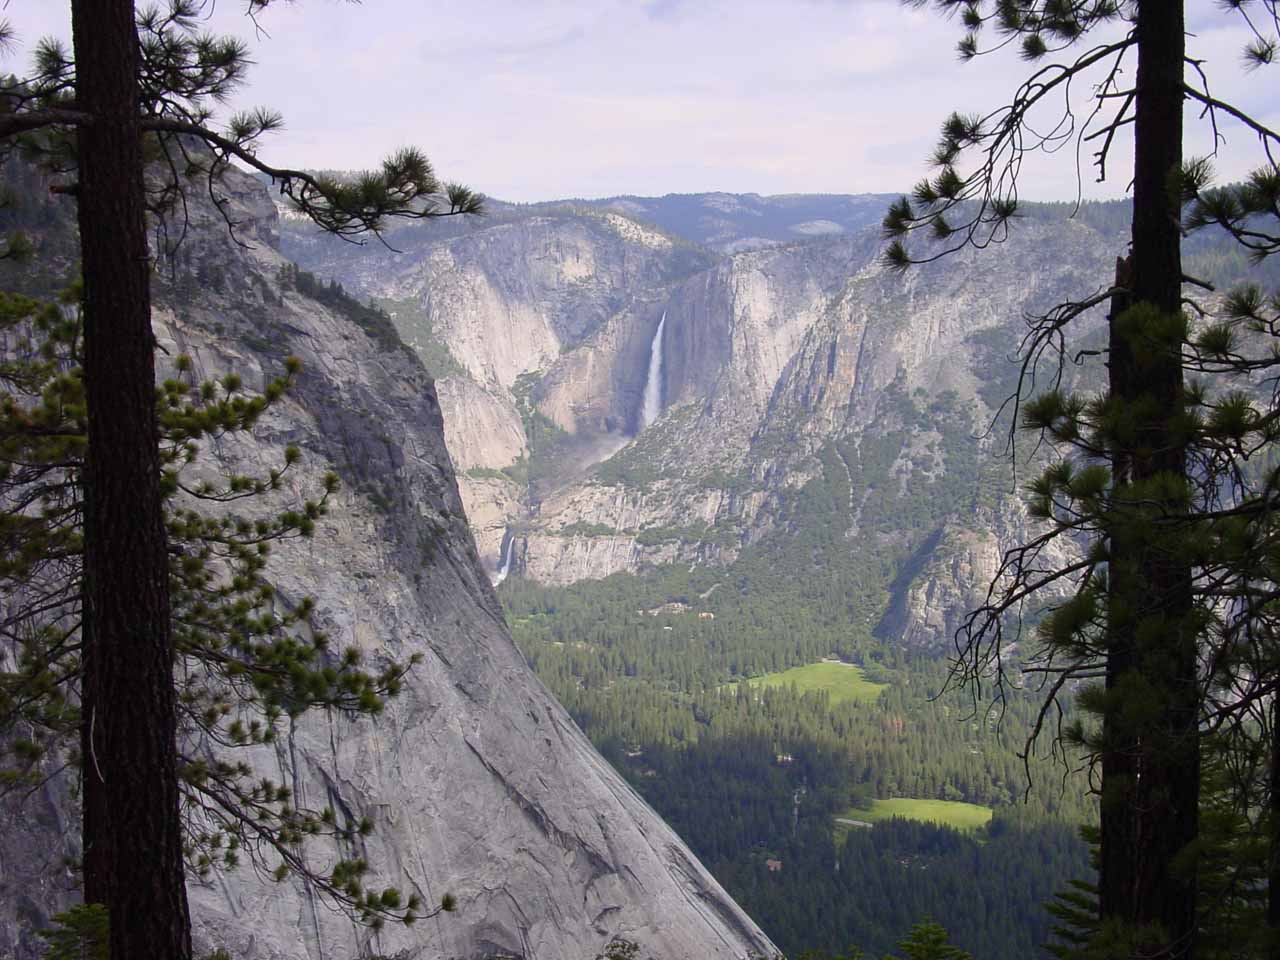 Unusual view of Yosemite Falls from the Panorama Trail